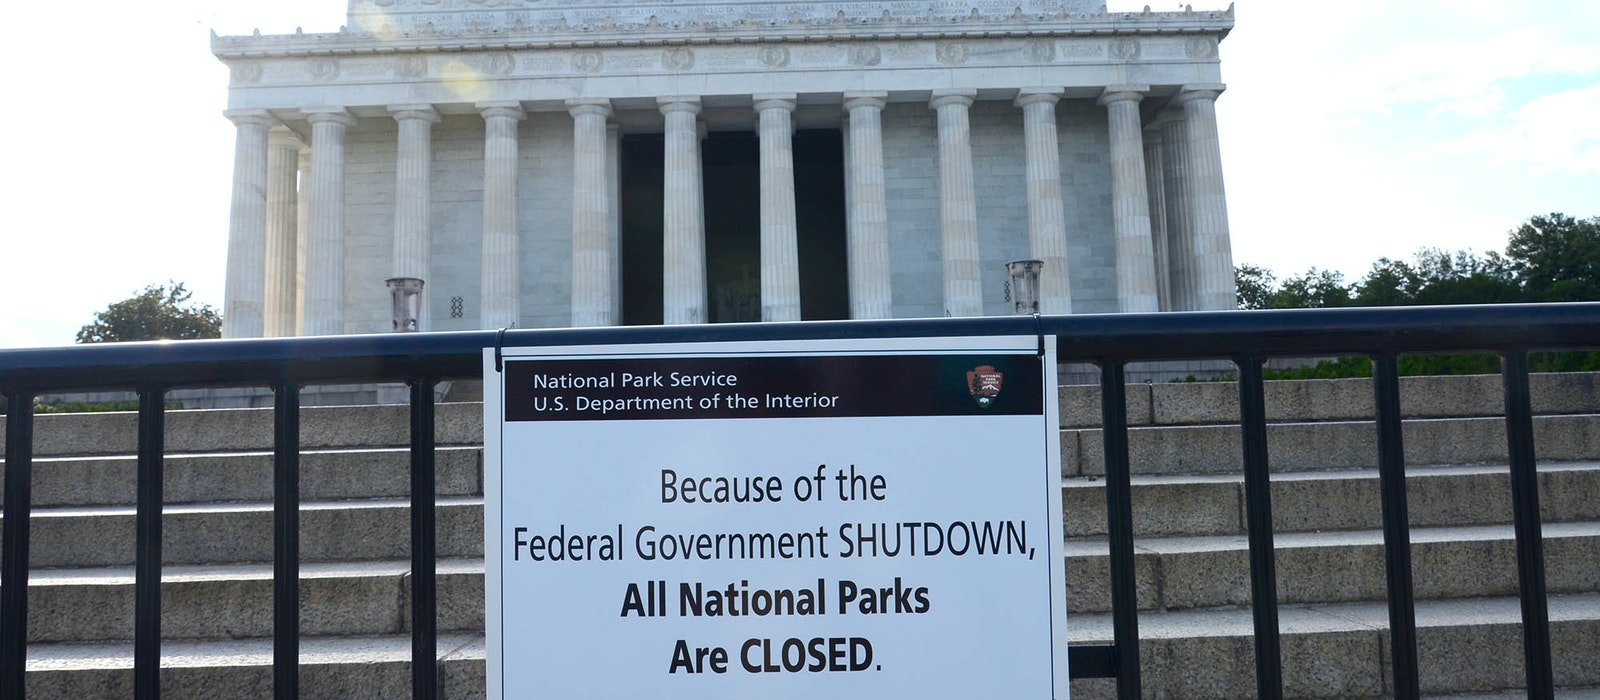 A sign at theLincoln Memorial in Washington, D.C. informs the public why the landmark is closed.